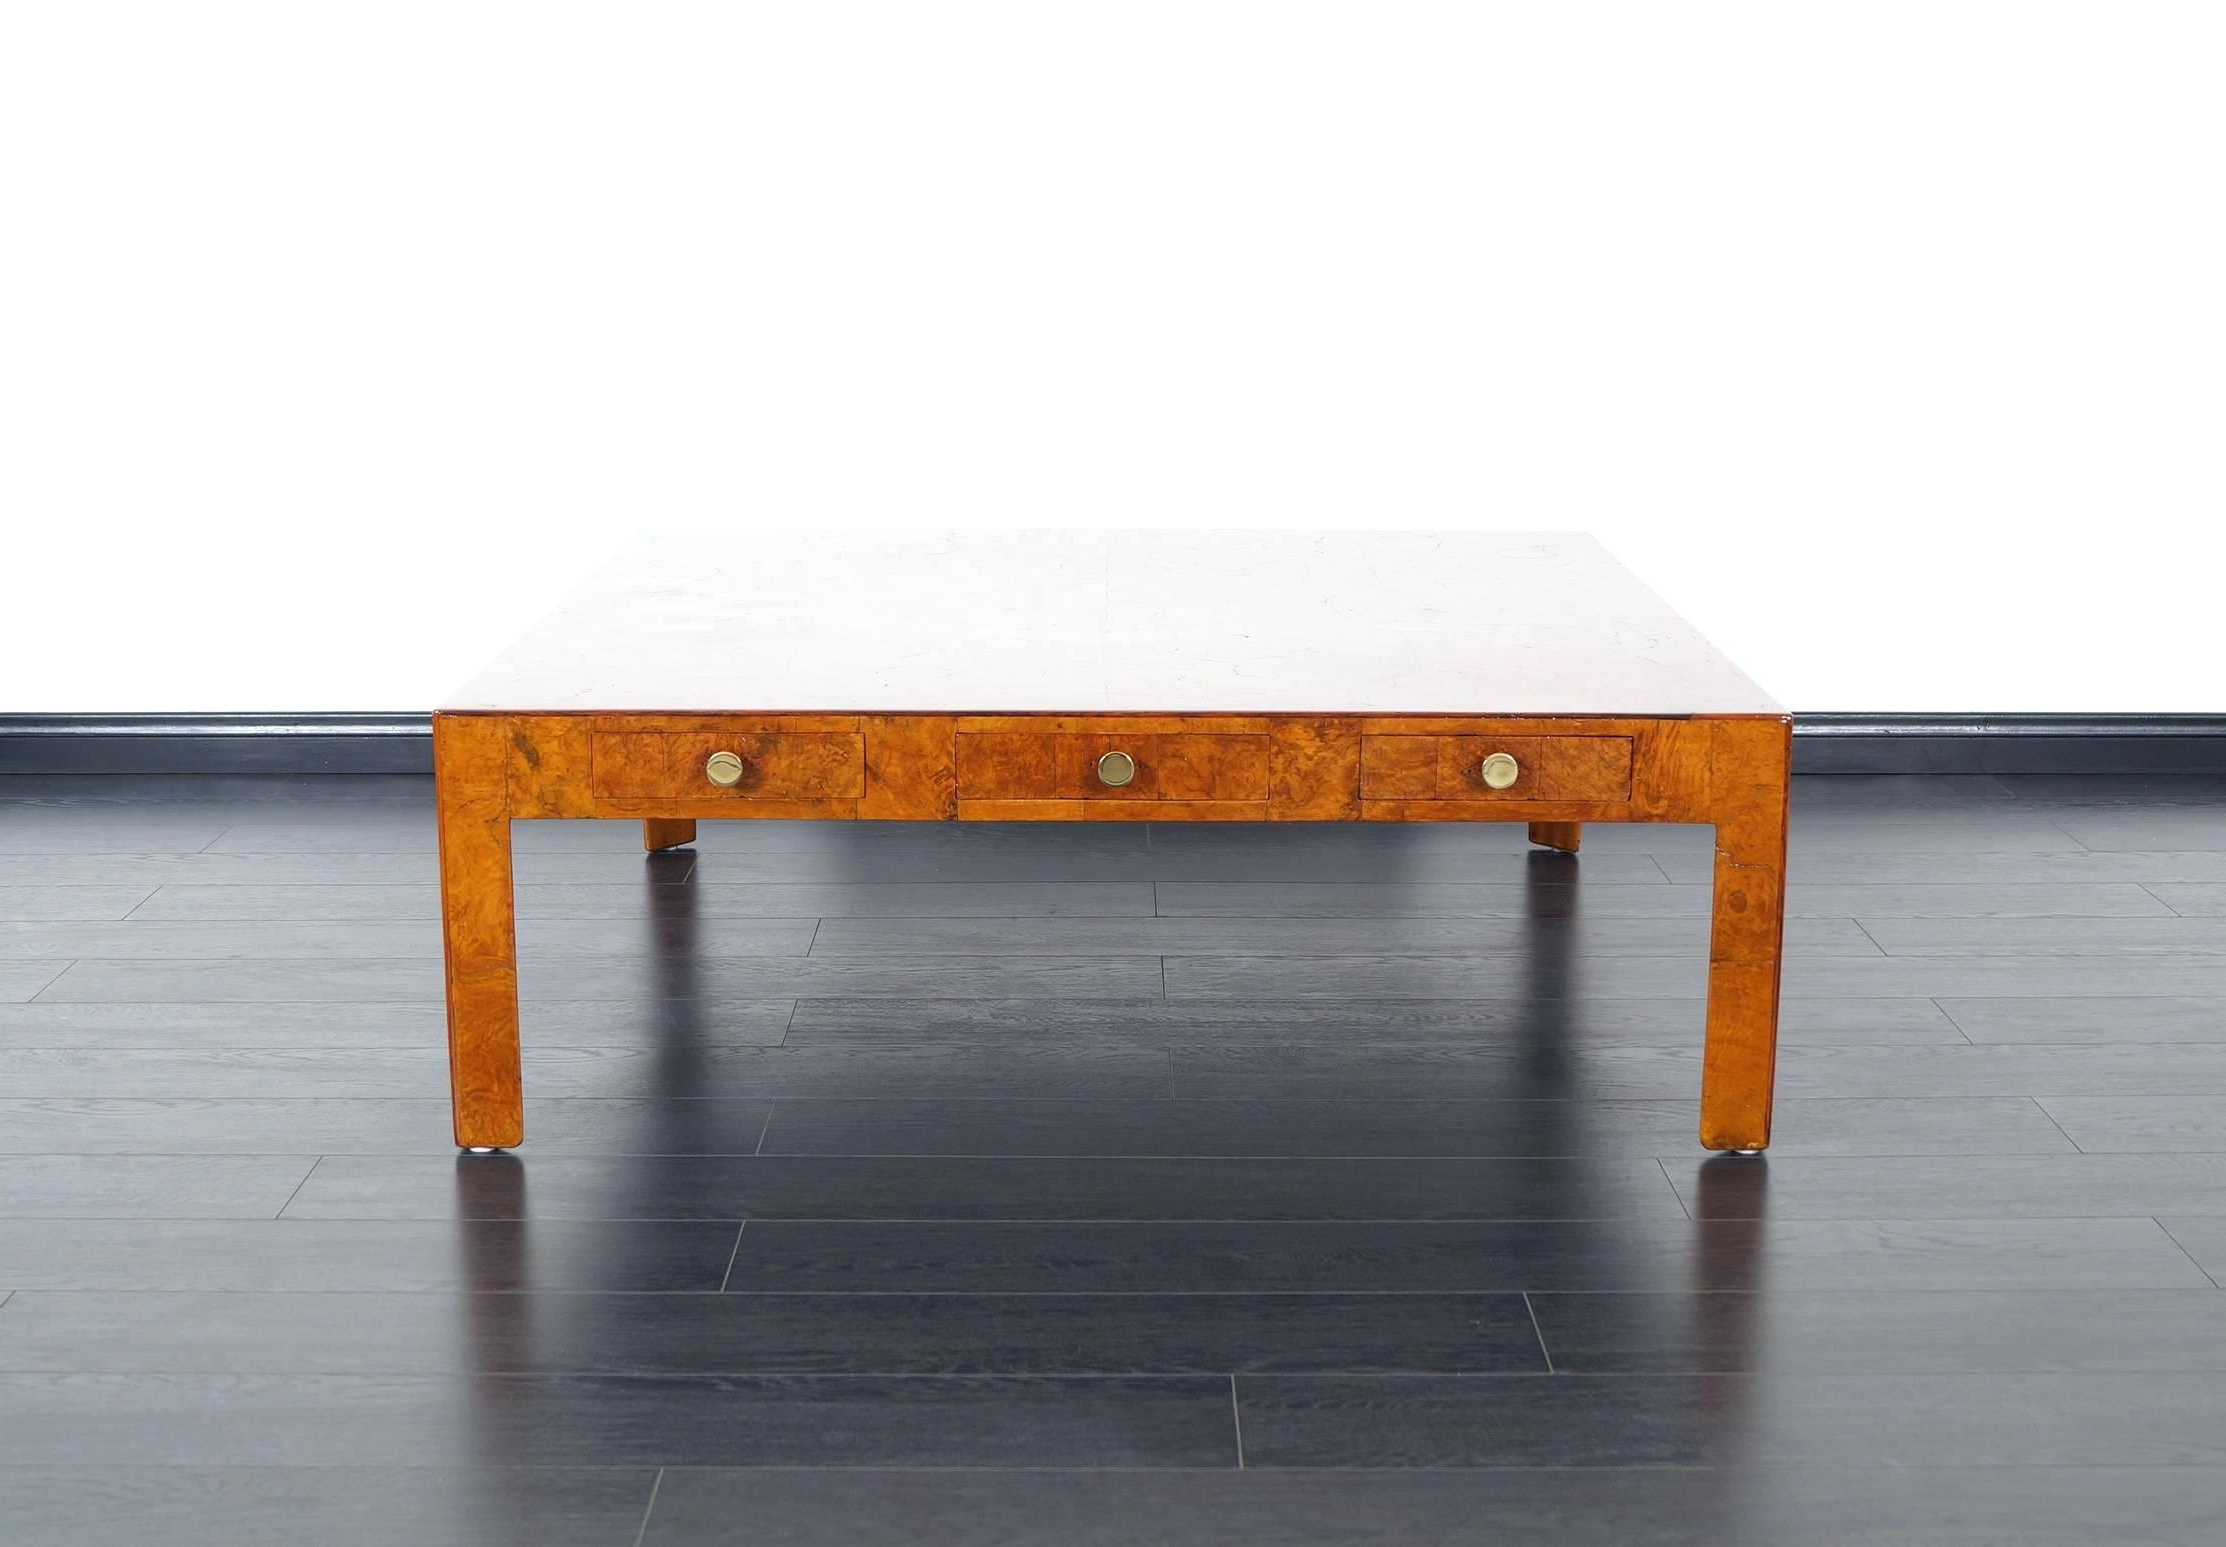 Brass And Wood Coffee Table Rectangular Contemporary Two Tier Glass Throughout Recent Joni Brass And Wood Coffee Tables (View 4 of 20)